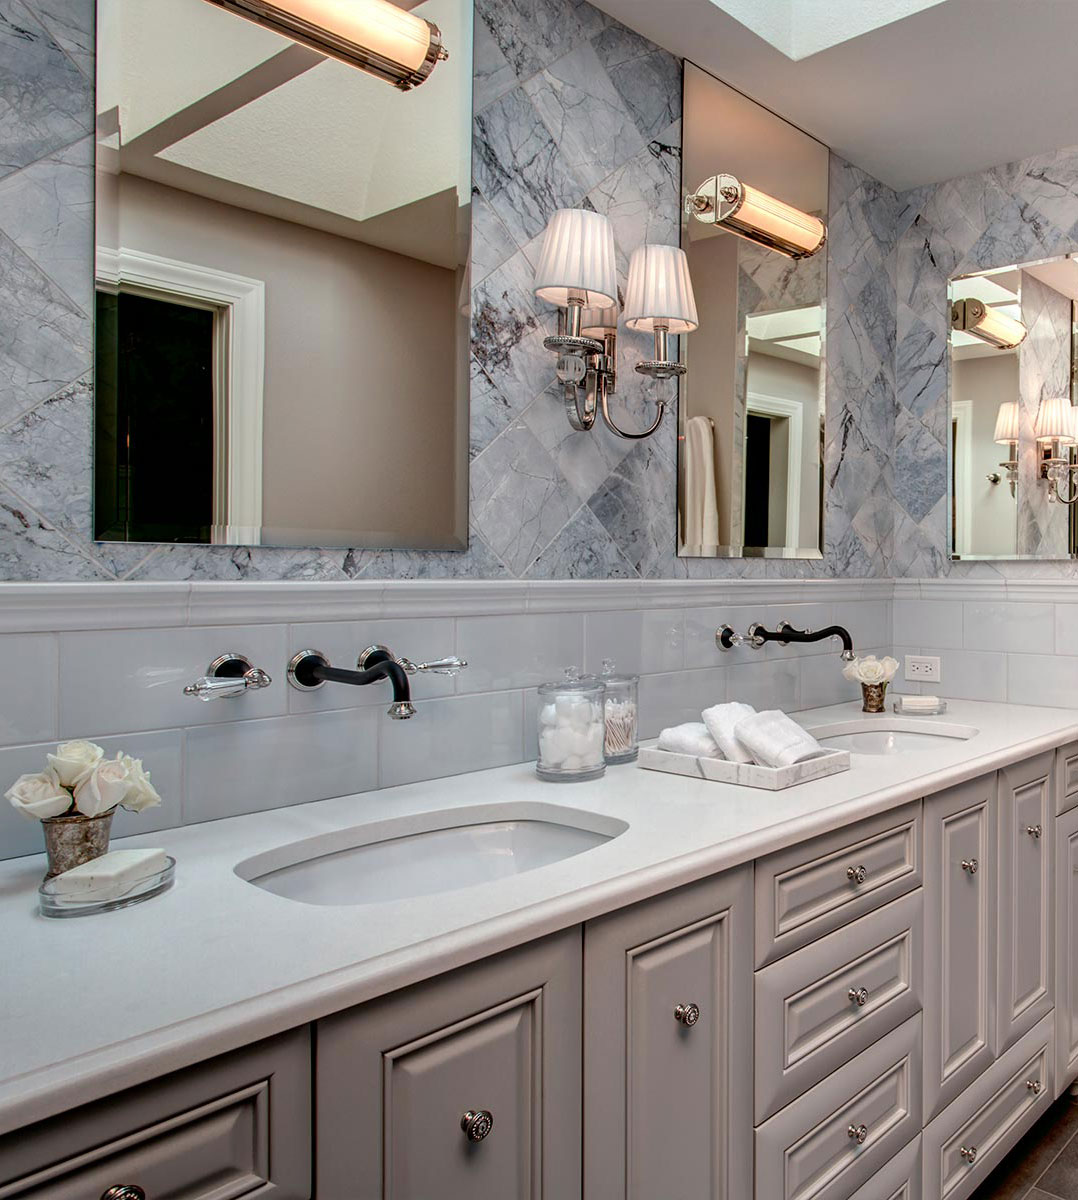 Provanti Designs master bath image - 'Dreamy Blue Dolomite'